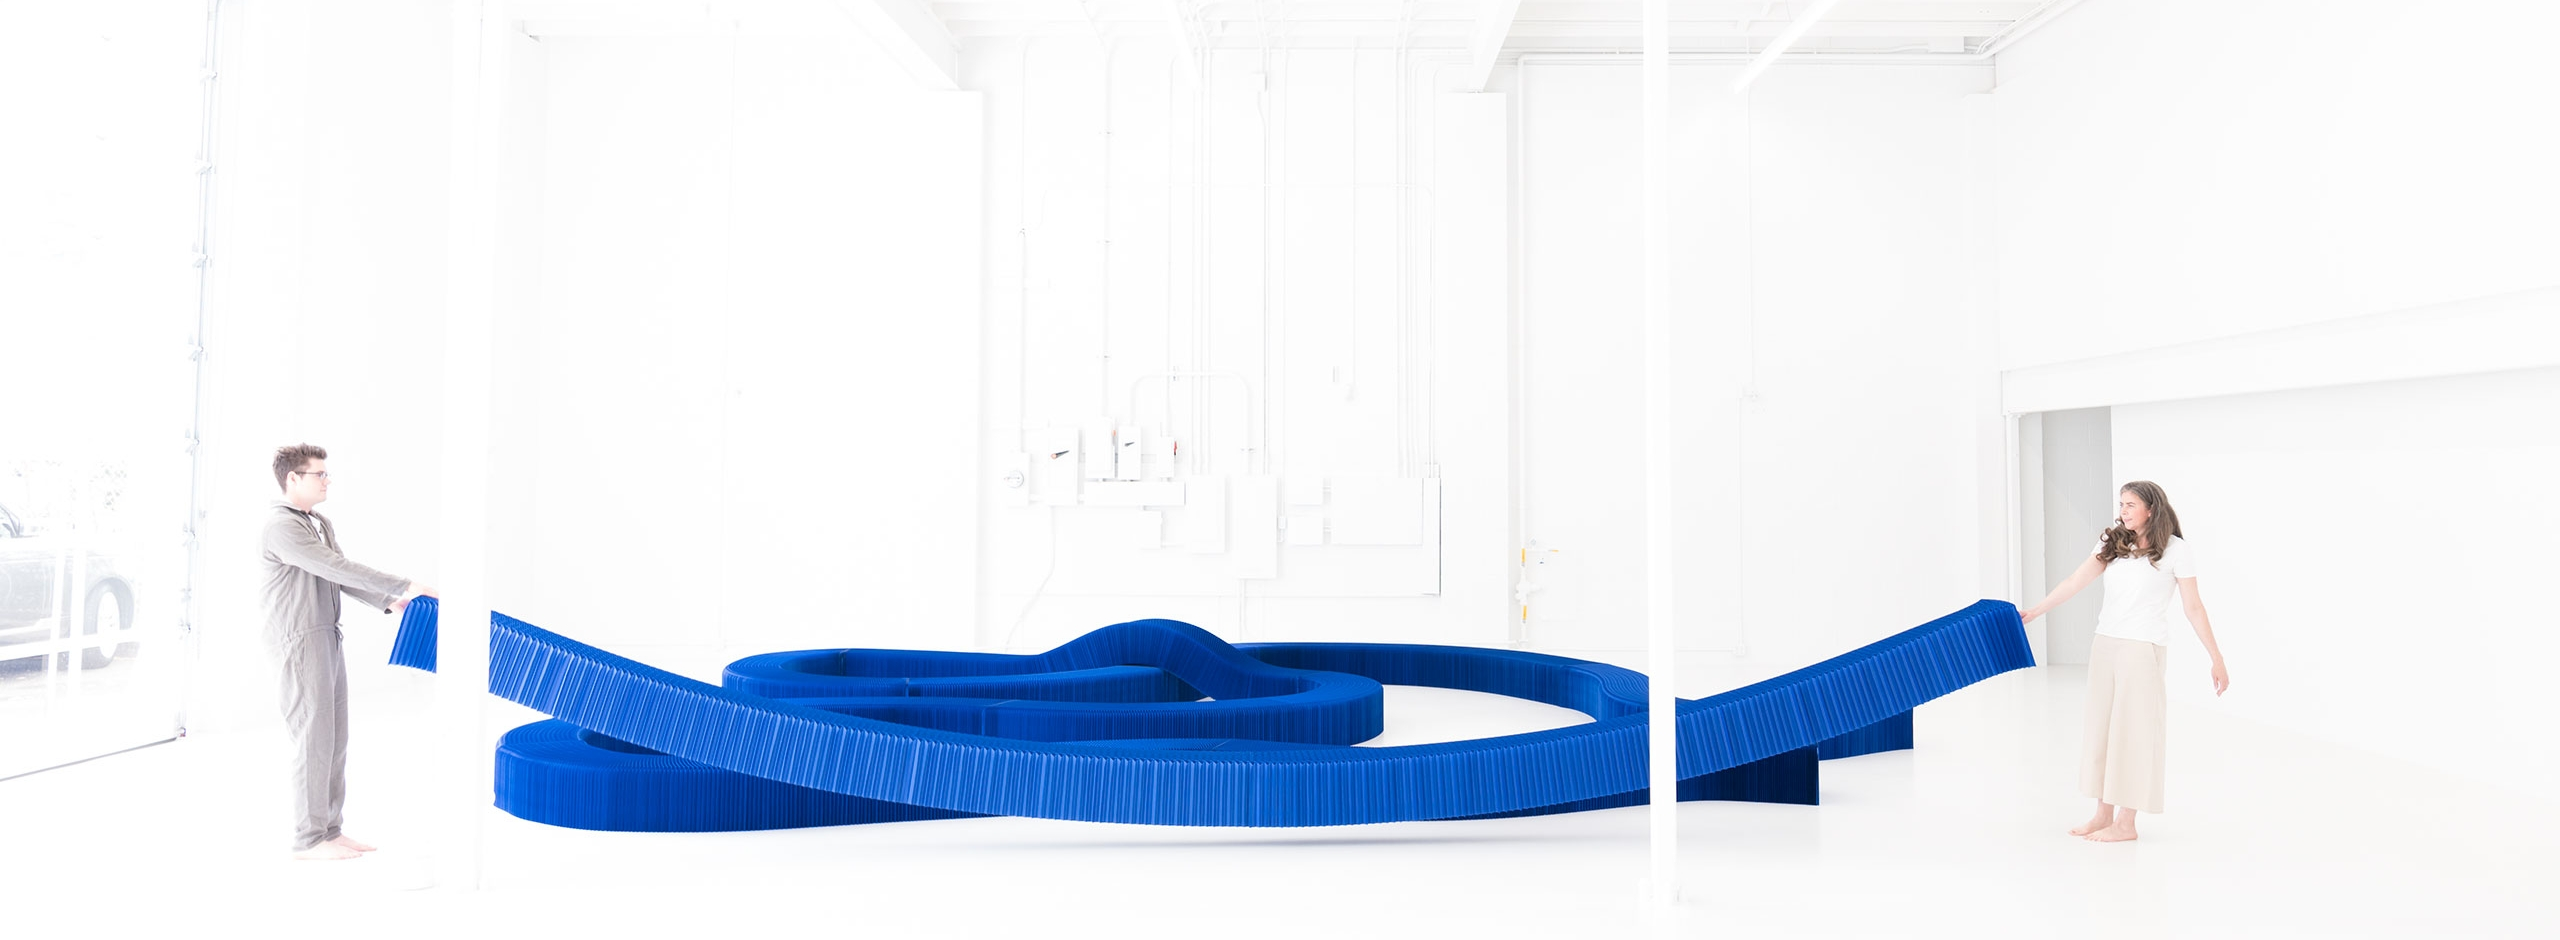 The modular paper furniture collection by molo includes this Klein blue expanding paper bench with magnetic connectors.